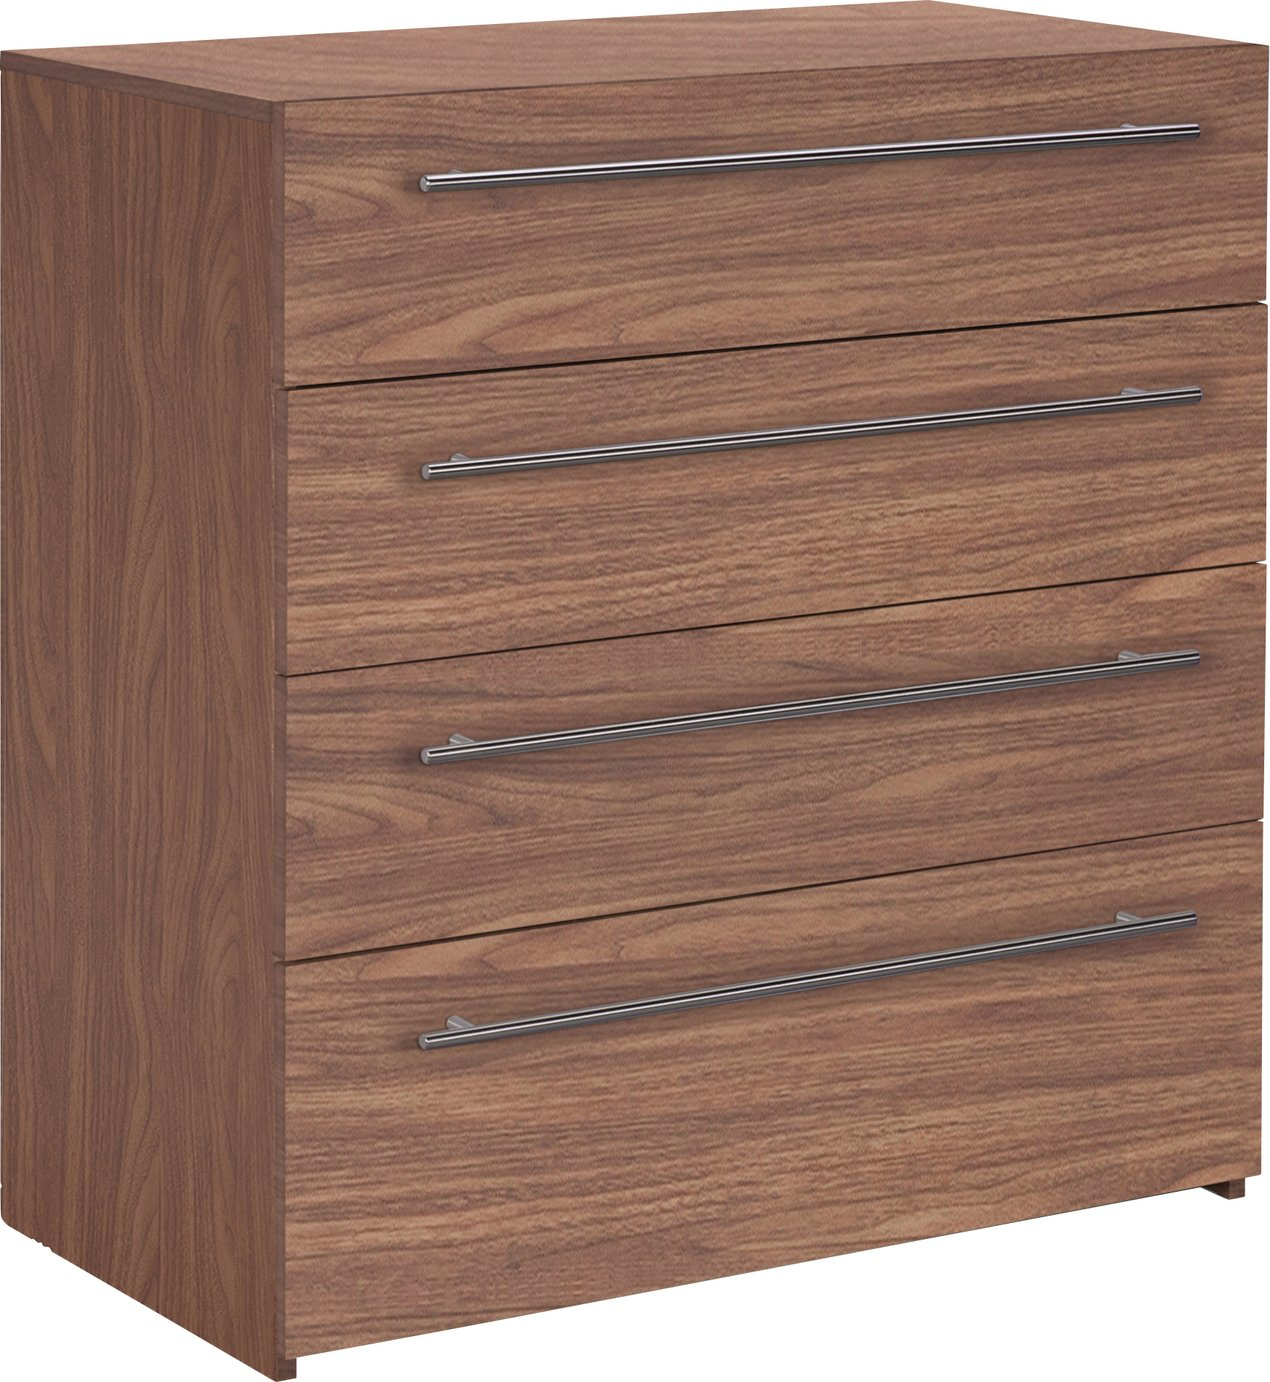 Argos Home Atlas 4 Drawer Chest - Walnut Effect